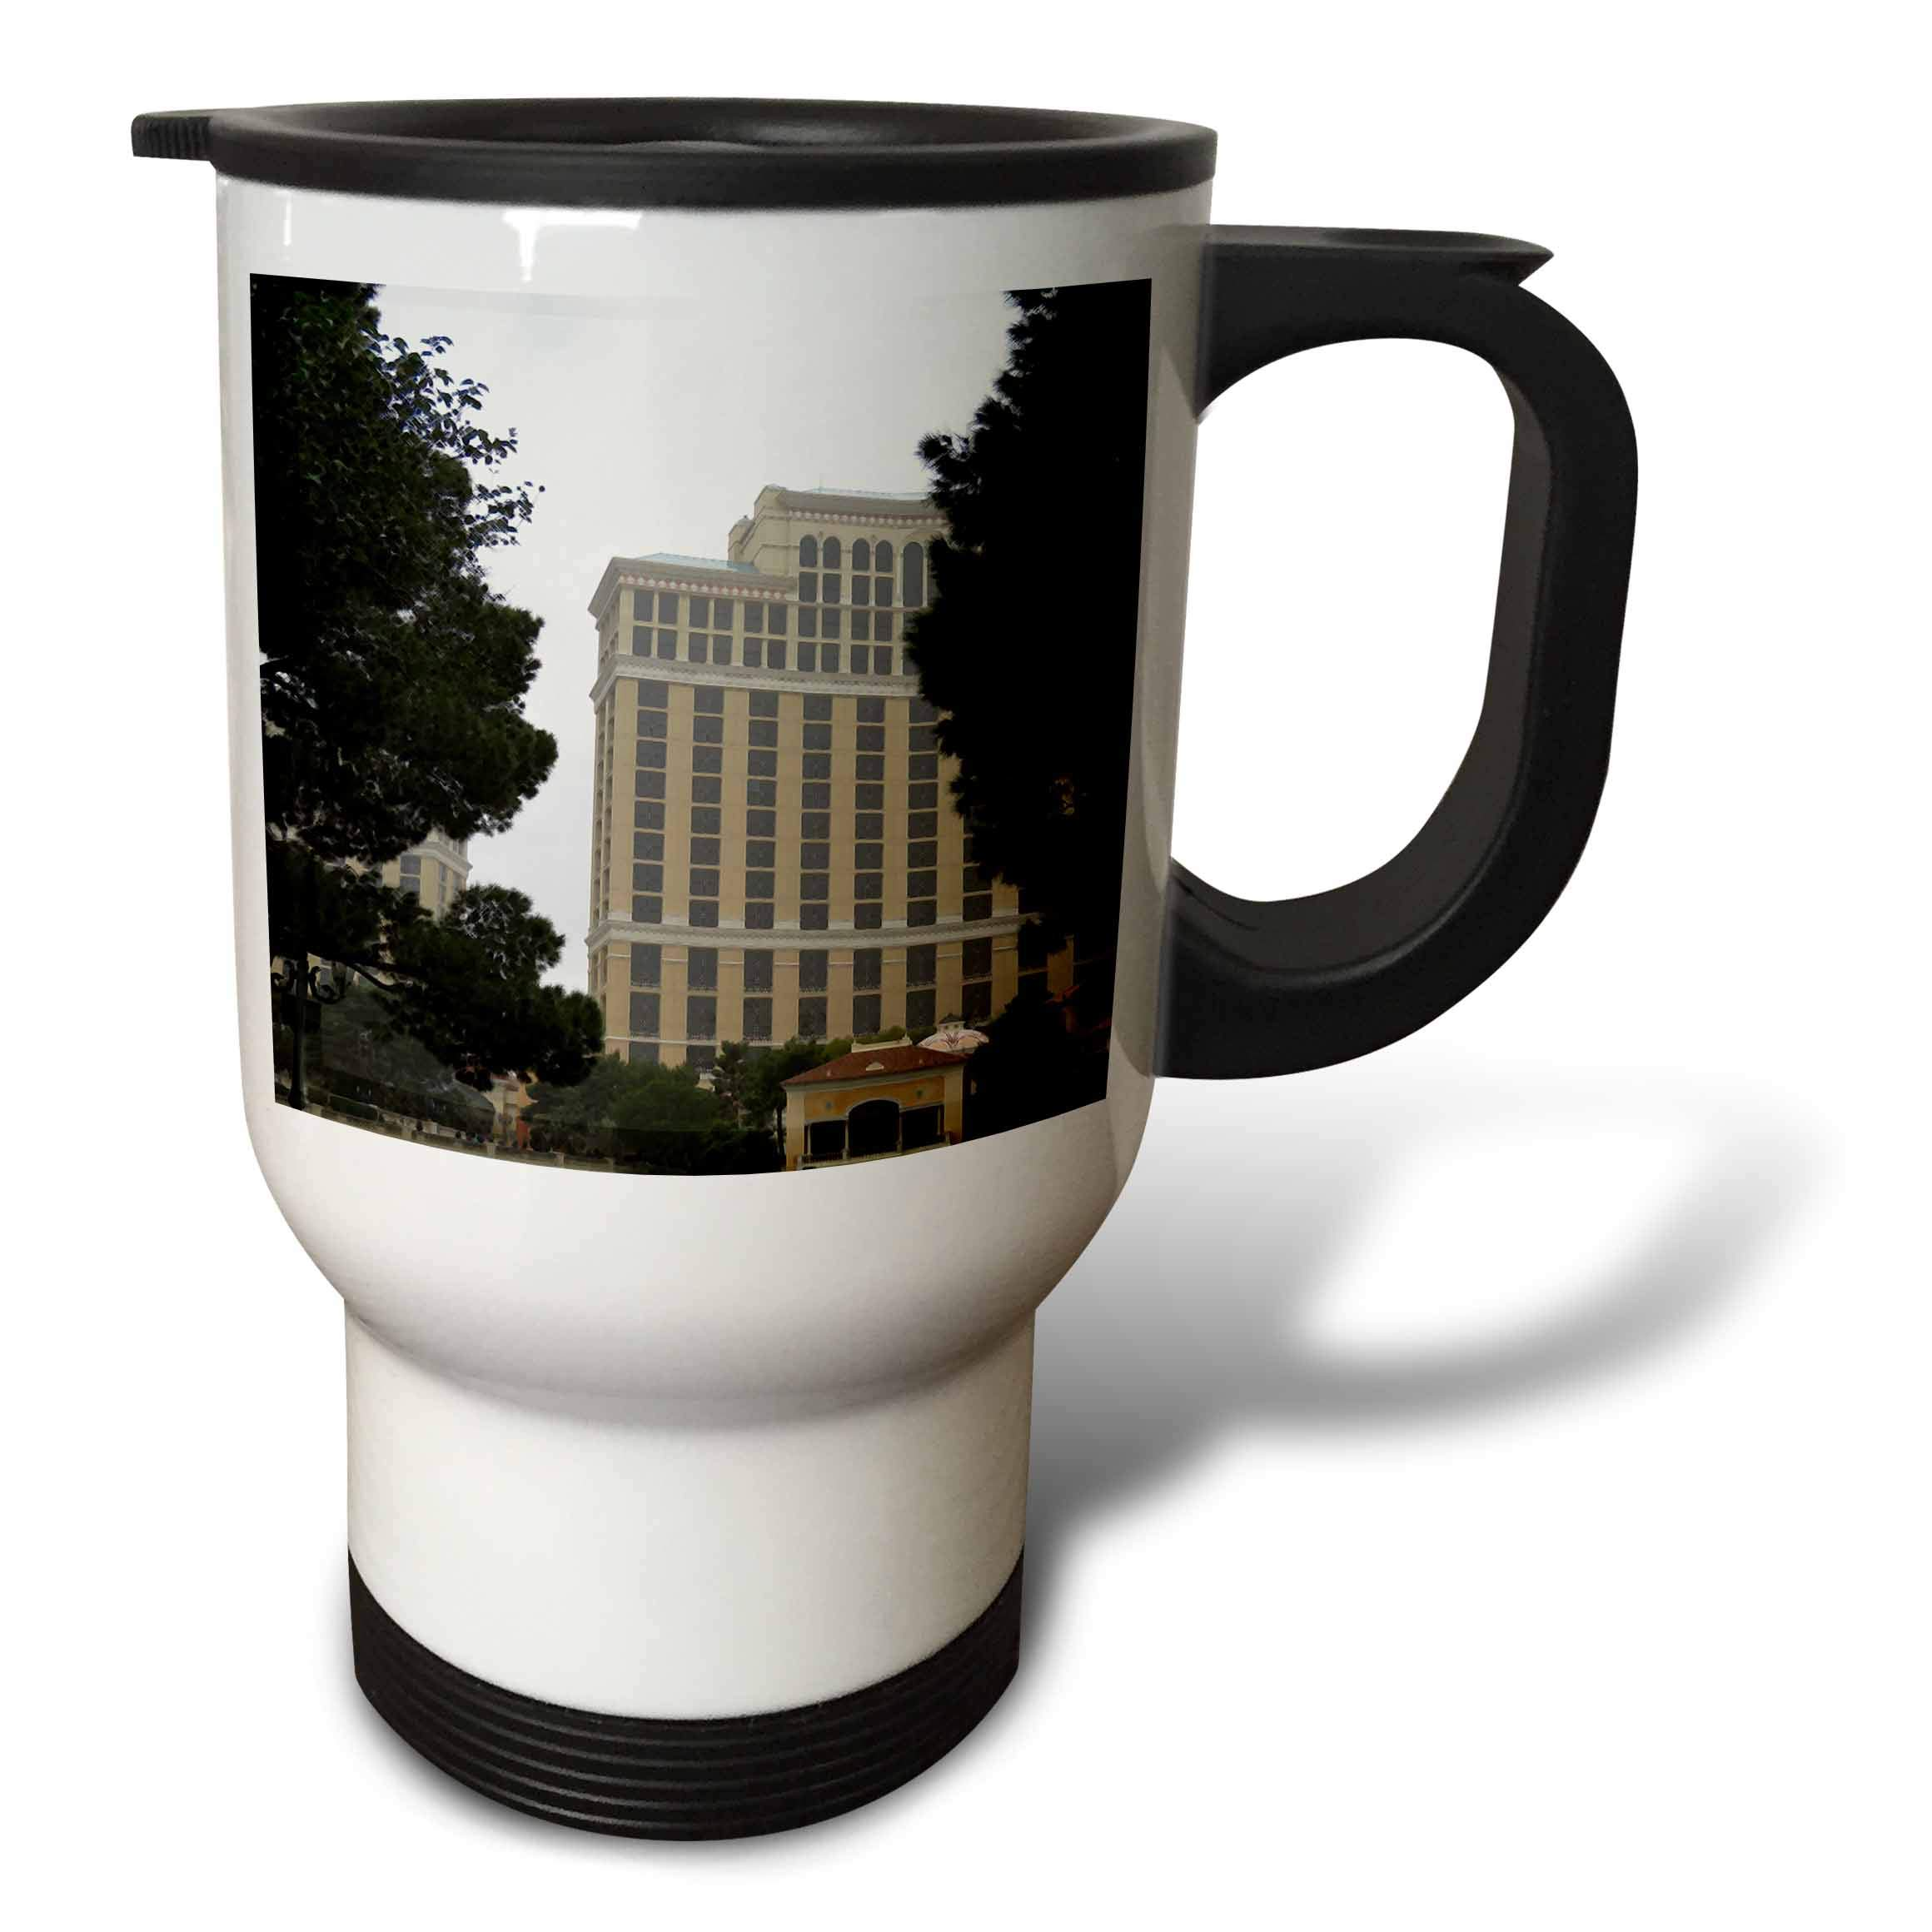 3dRose Jos Fauxtographee- Vegas Hotal with Trees - A Vegas Hotel that has been digitally dry brushed with trees - 14oz Stainless Steel Travel Mug (tm_291087_1)